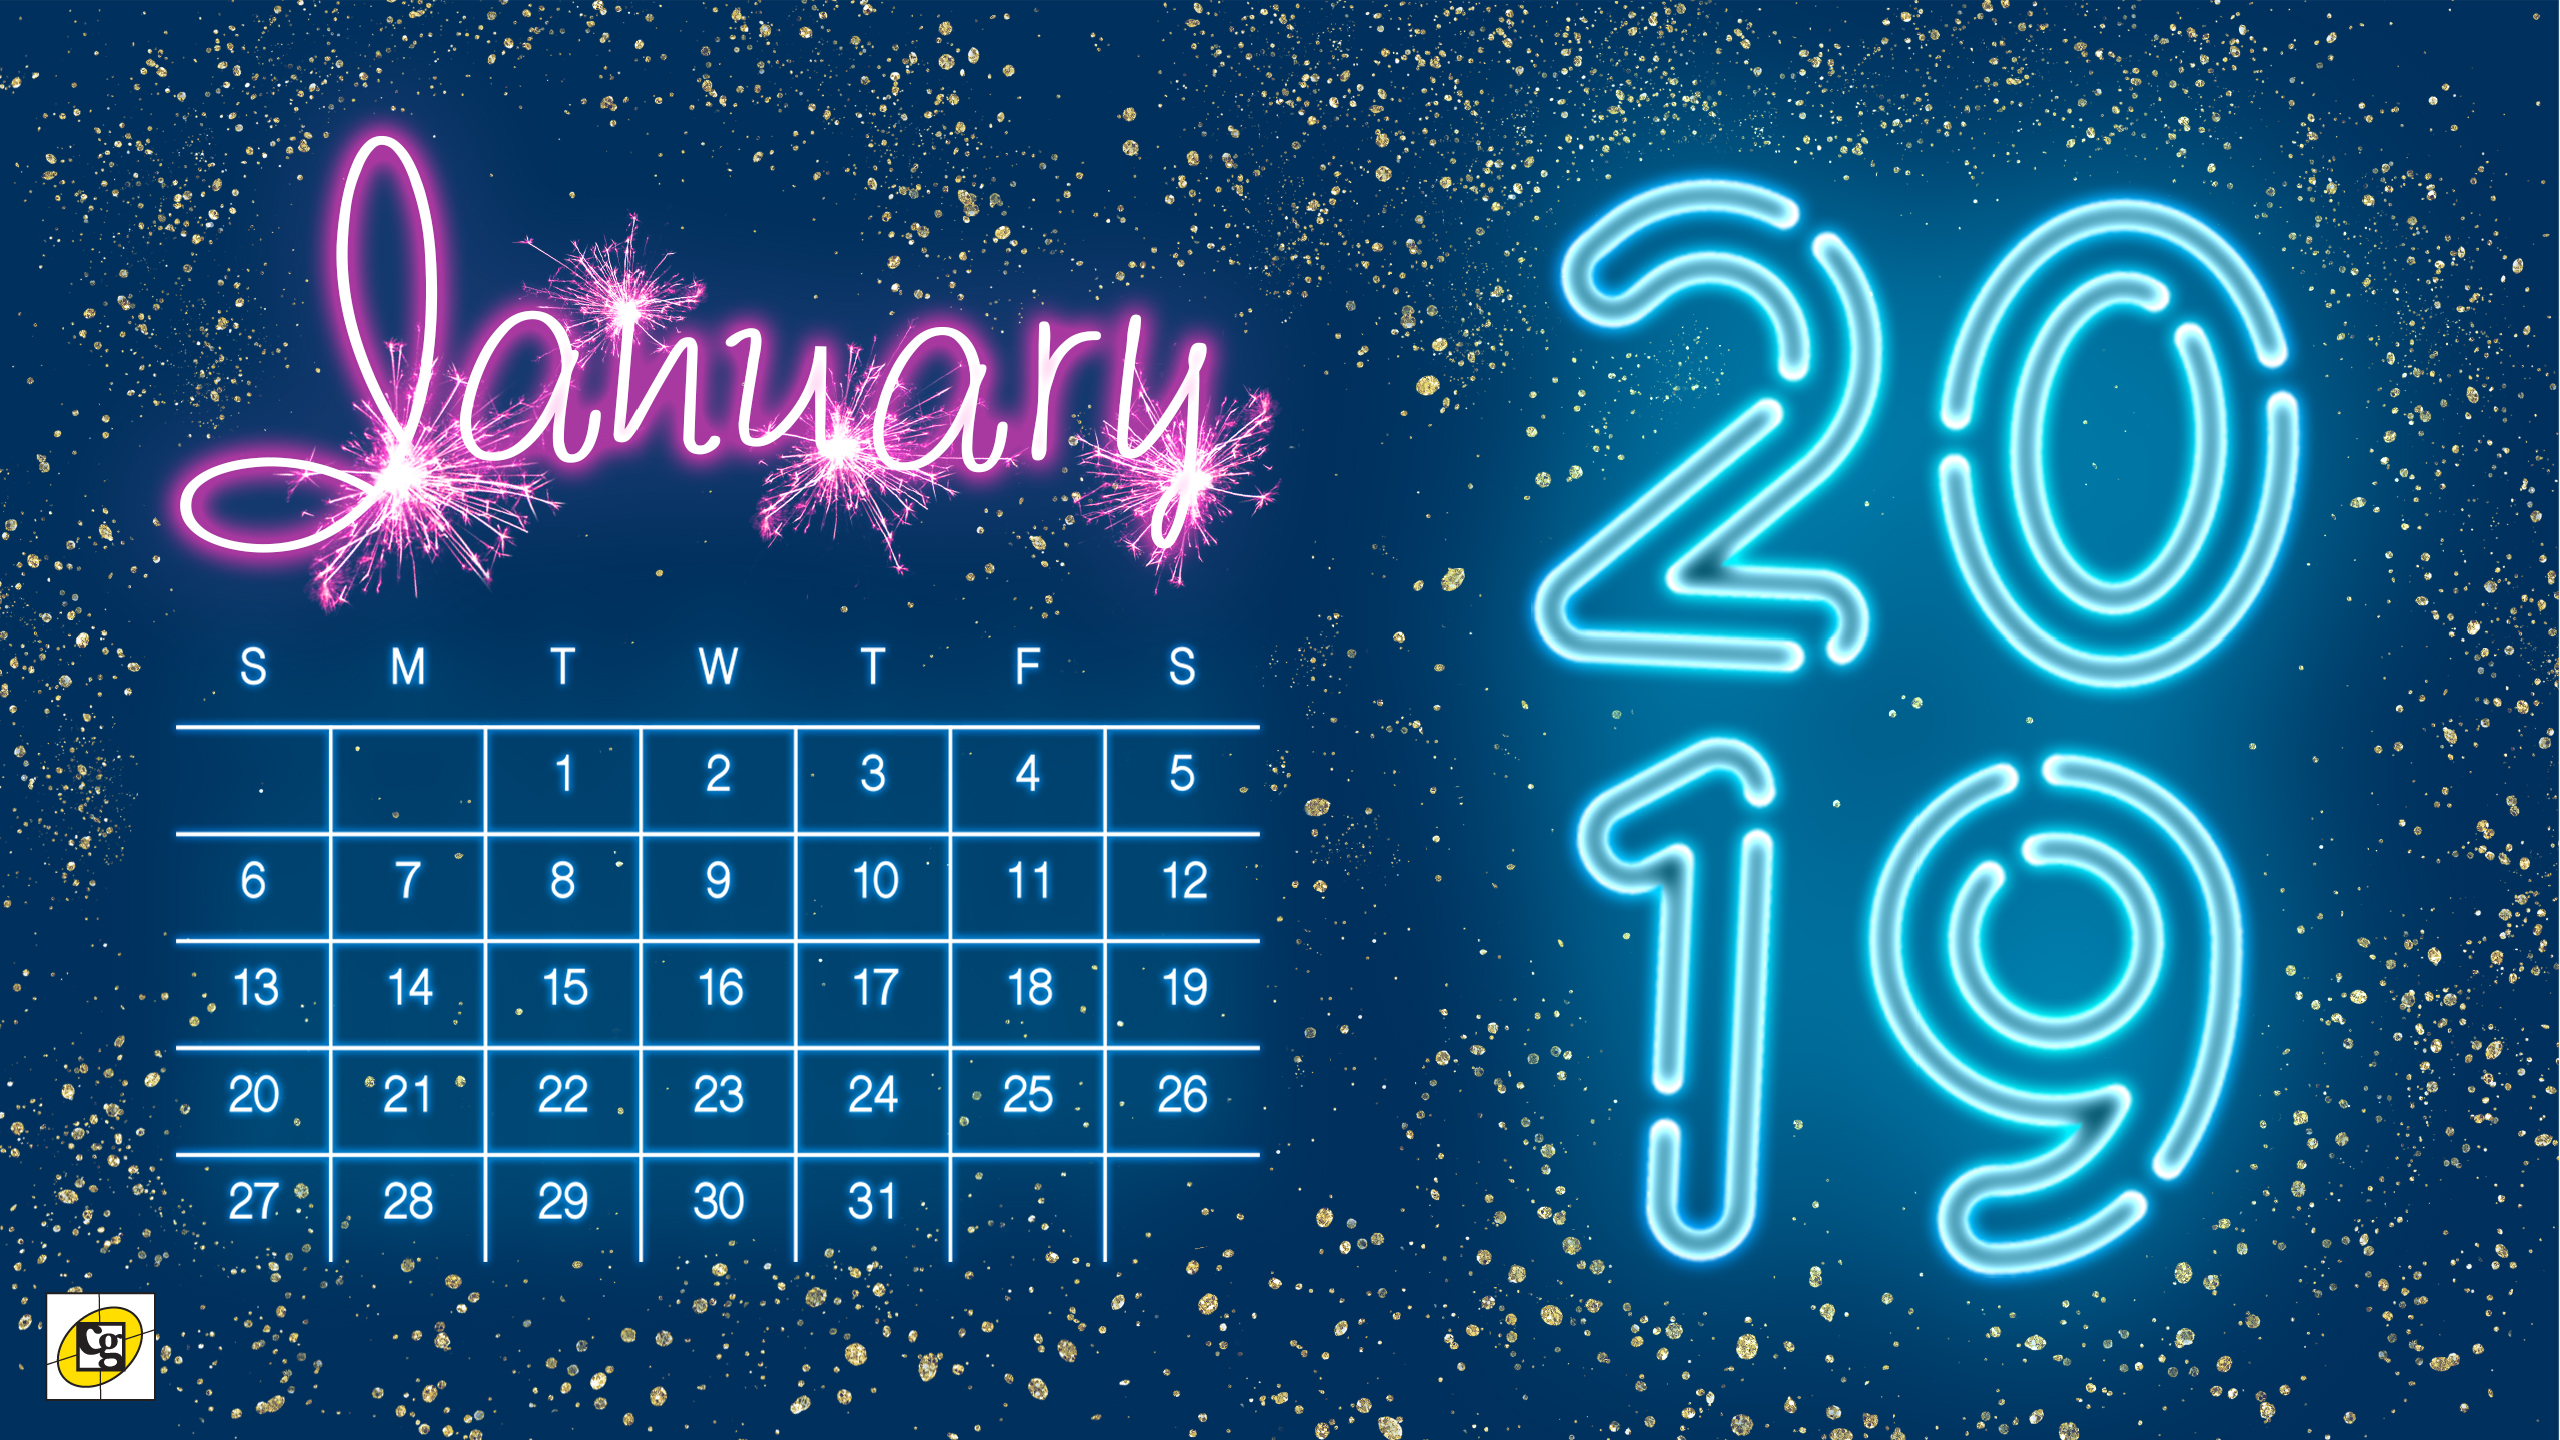 January 2019 Calendar Desktop Free Download: January 2019 Desktop Calendar   Composure Graphics